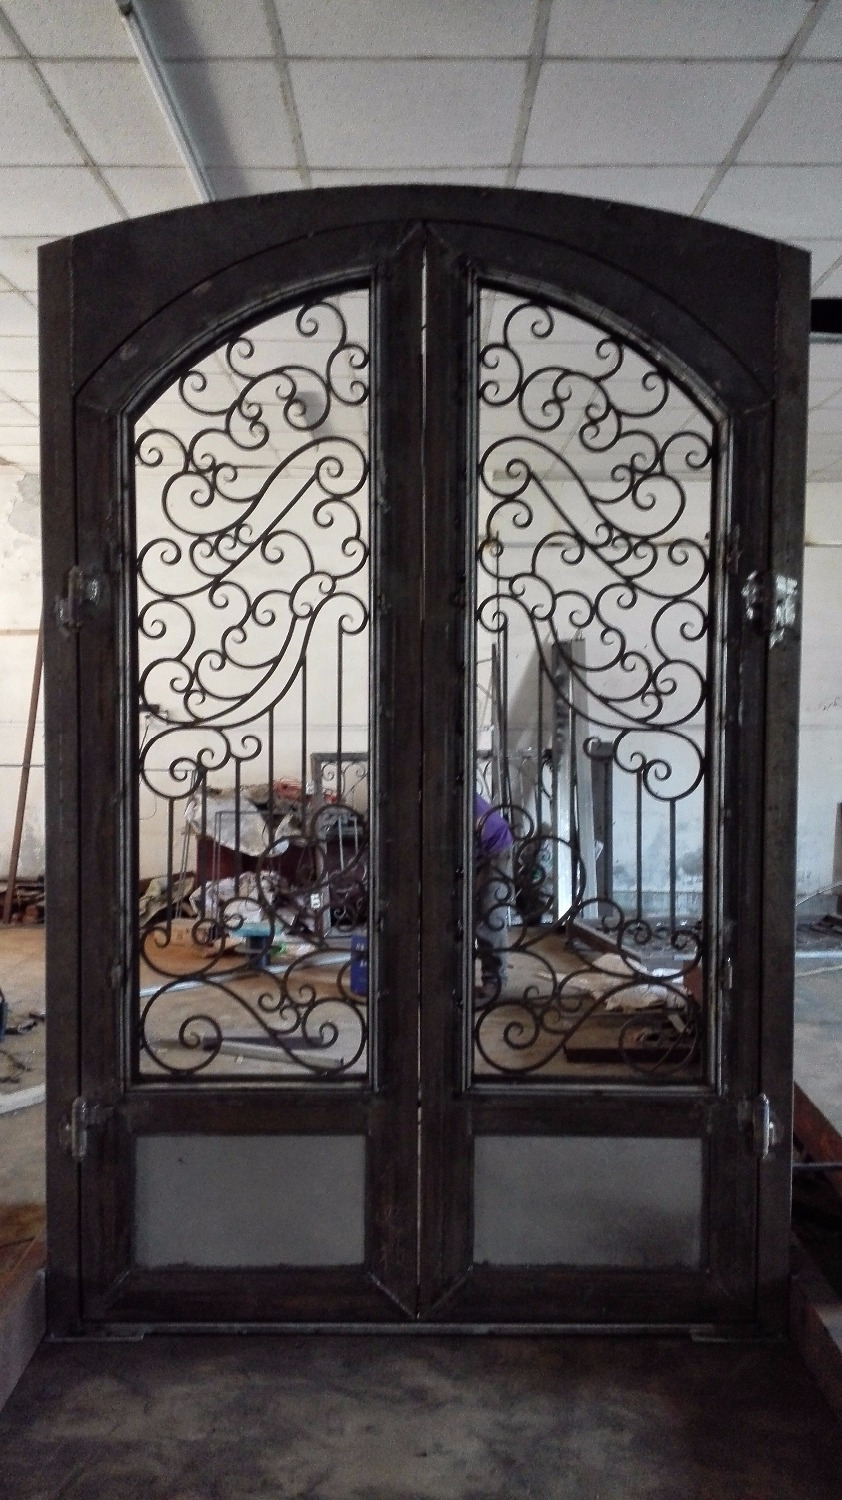 Custom Made Wrought Iron Doors 72 X 108 Inches 12 Gauge Glass Window